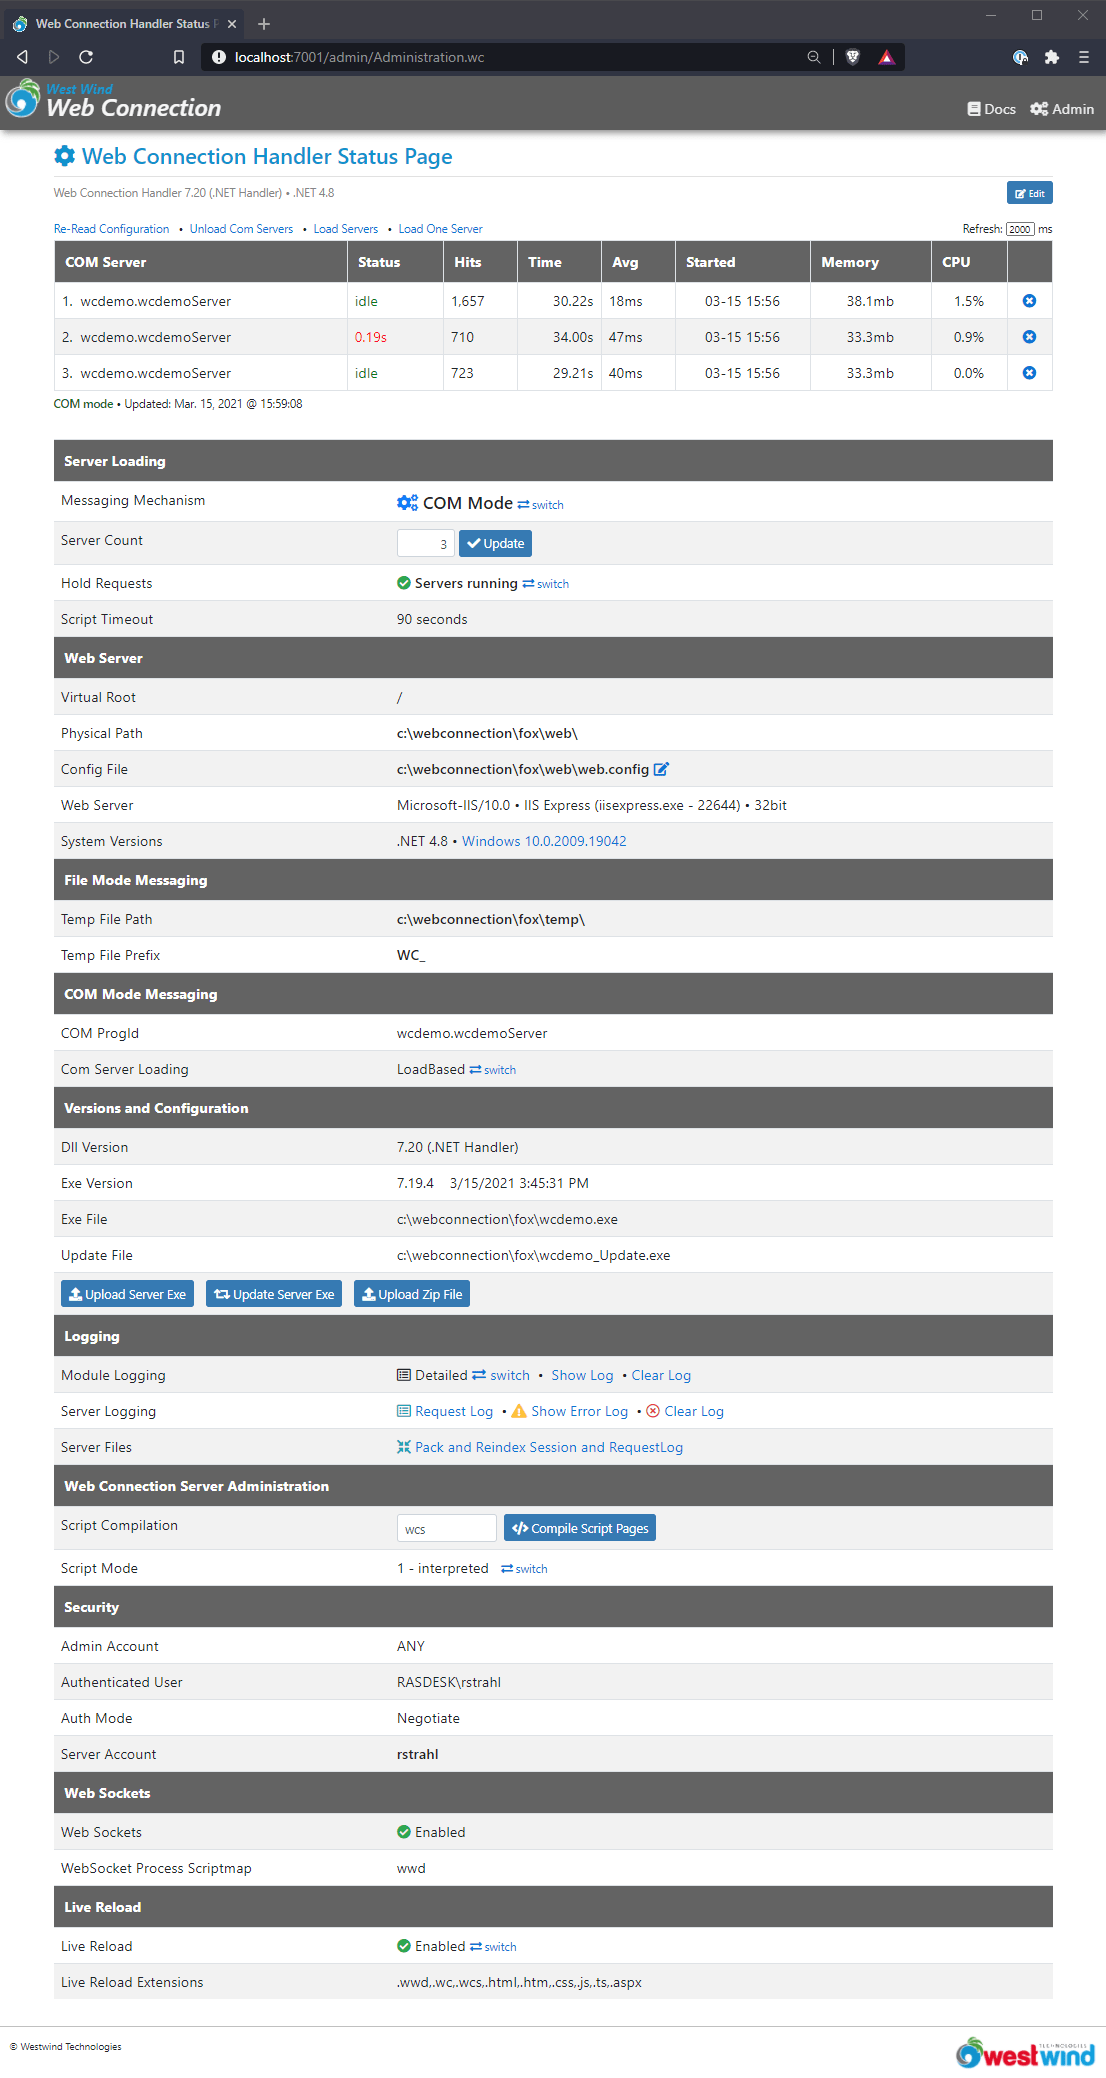 Web Connection 6 0 RTM is here